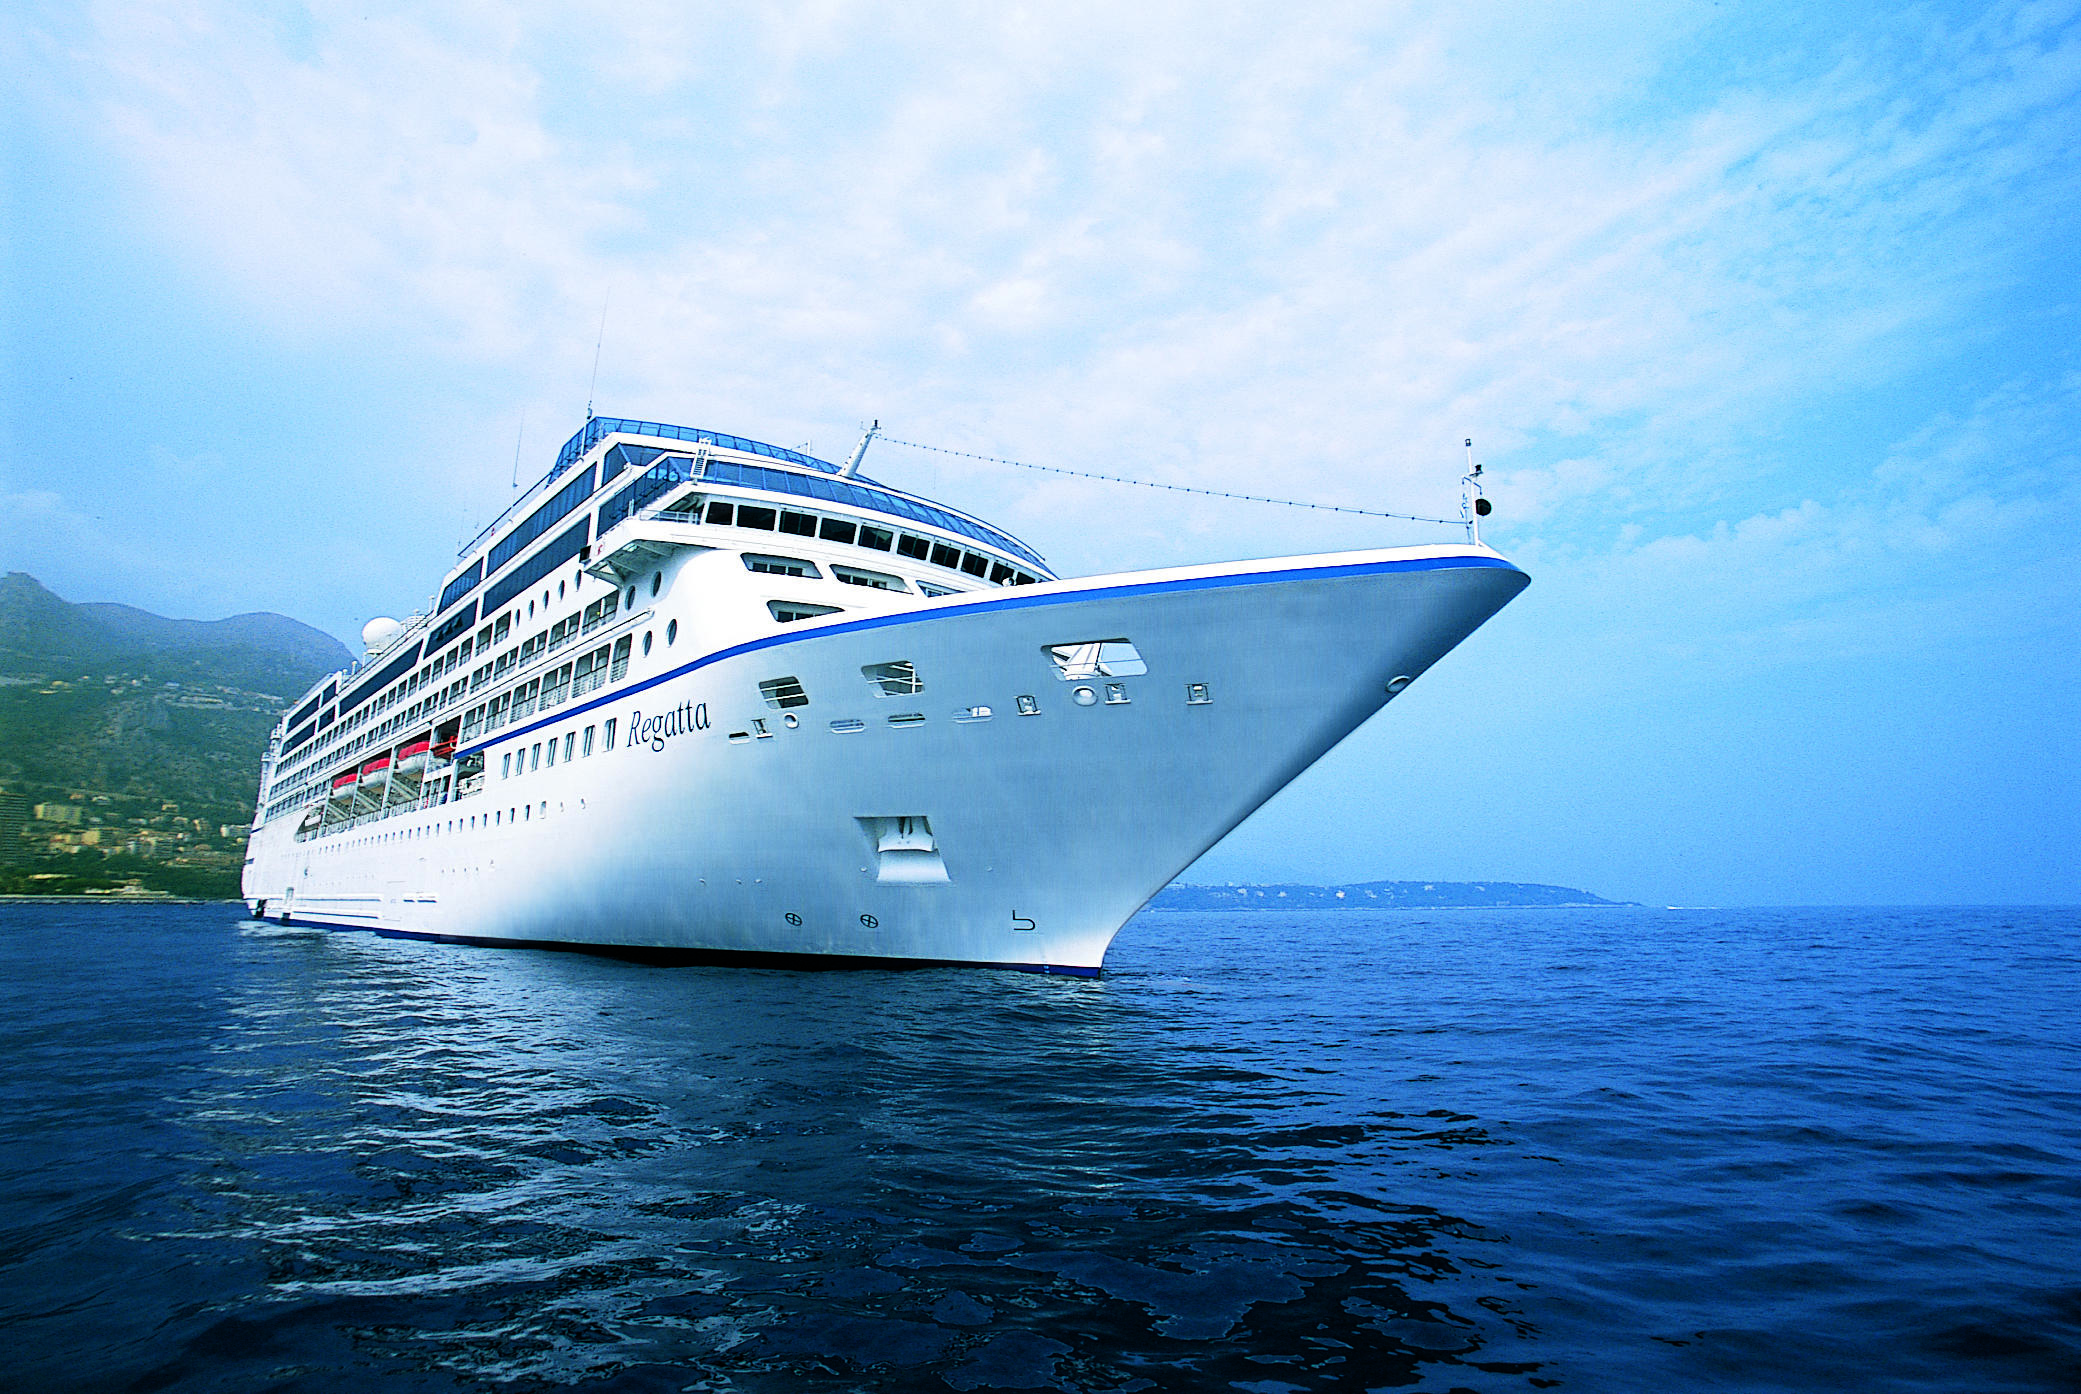 Oceania Regatta Cruise Ship Reviews UPDATED - Guest entertainers wanted for cruise ships